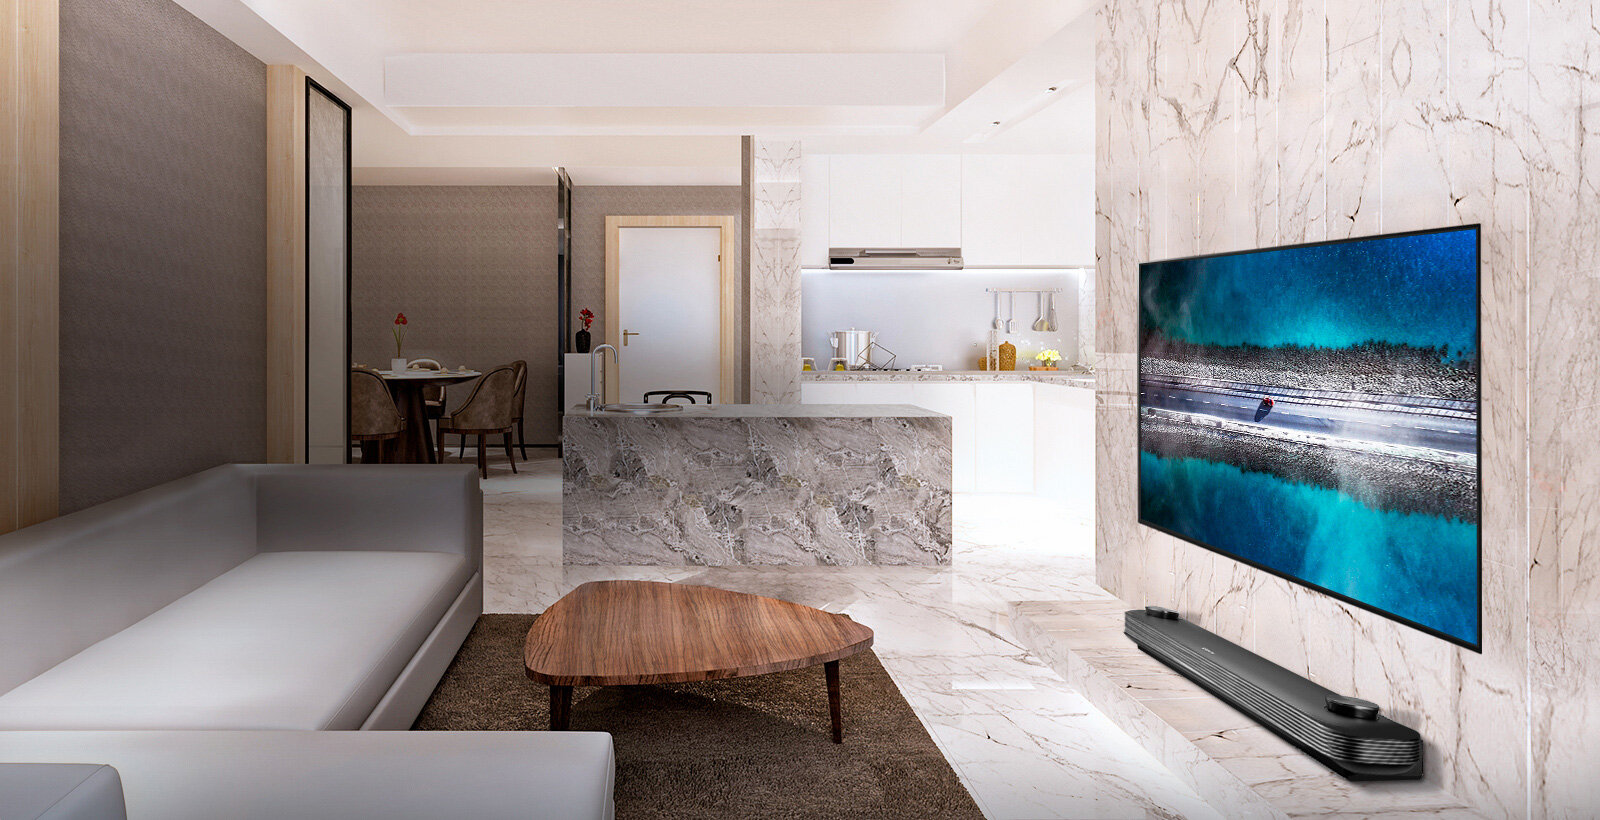 One with the Wall - LG SIGNATURE OLED TV W9, designed to blend into the wall, bringing a mesmerising experience and aesthetic in your space. A feat only possible with uniquely sophisticated LG OLED TV technology.